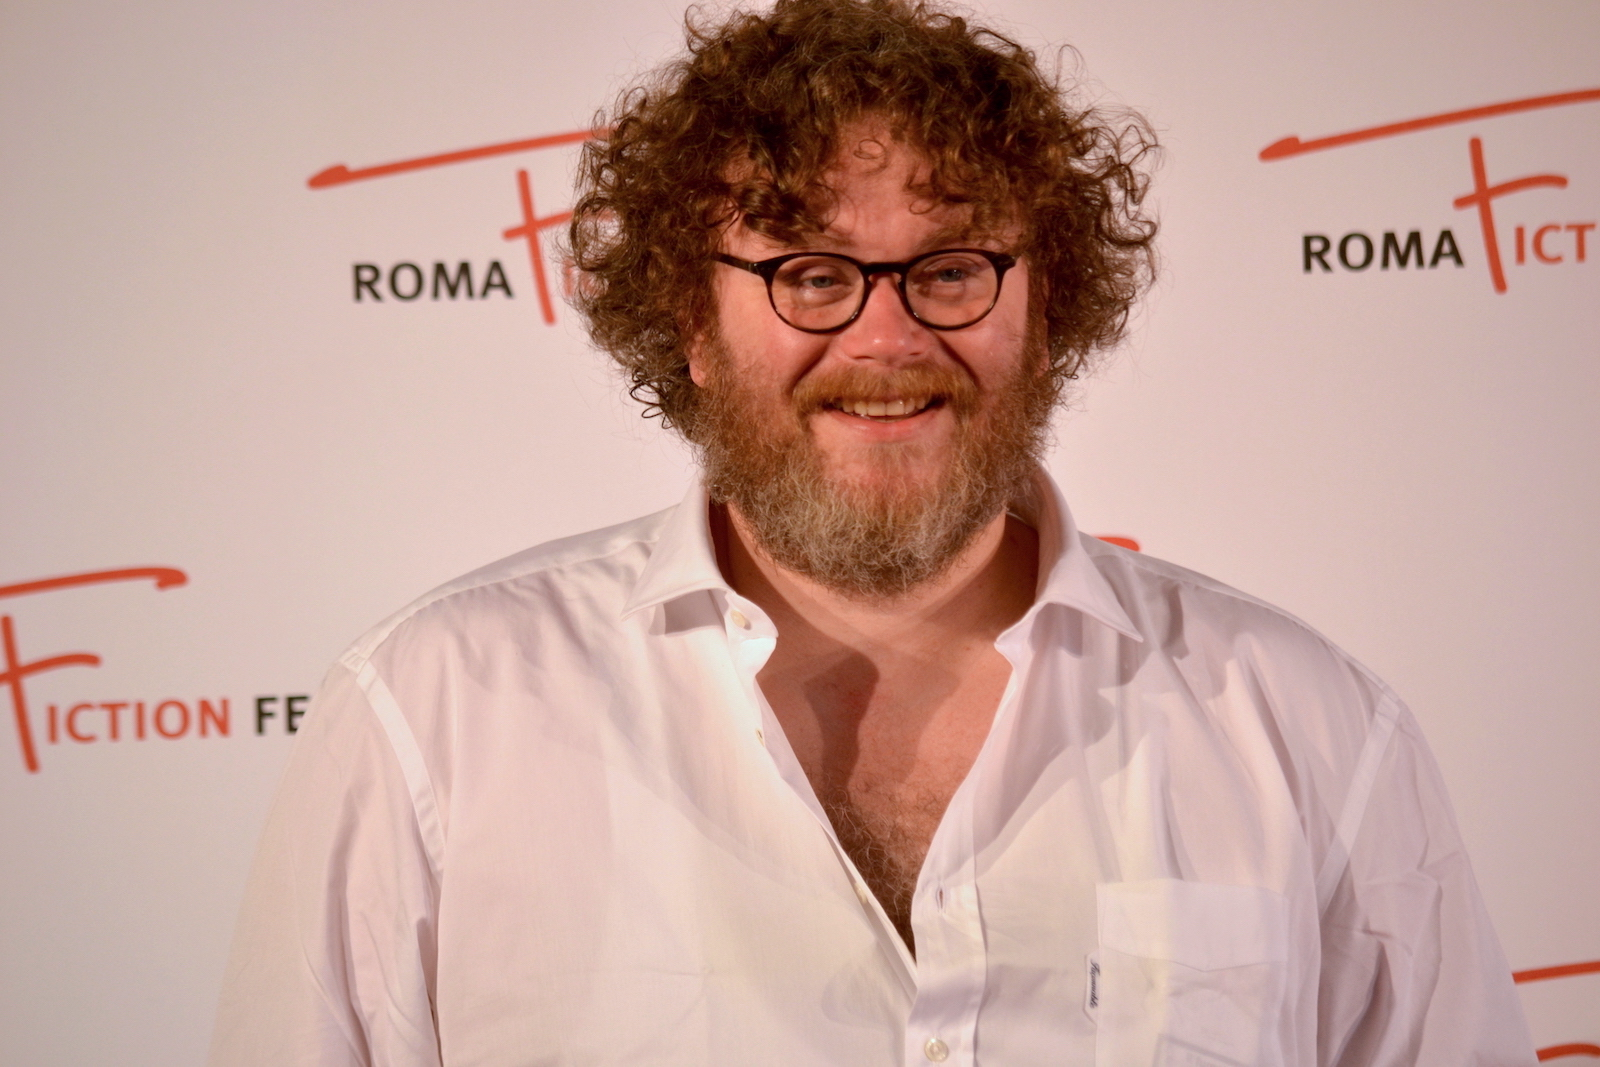 Roma Fiction Fest 2015: Vincent Lannoo al photocall di Trepalium